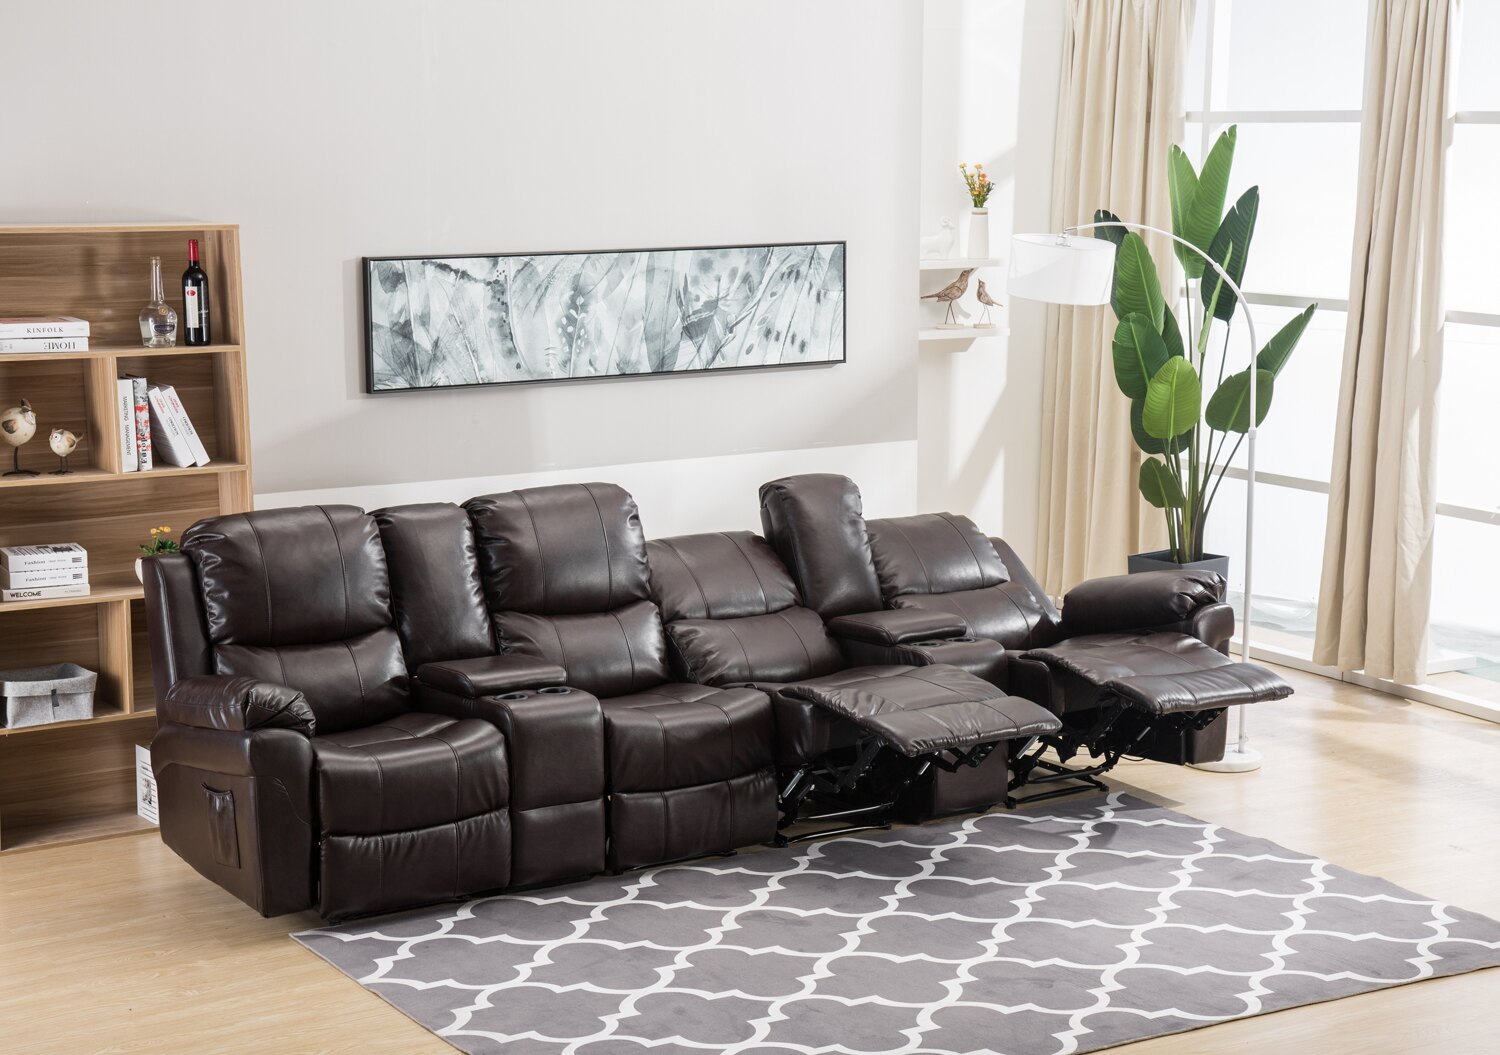 mcombo: Mcombo Brown 4-Seat Leather Home Theater Recliner Media Sofa  Combination Sofa w/Cup Holder | Rakuten.com